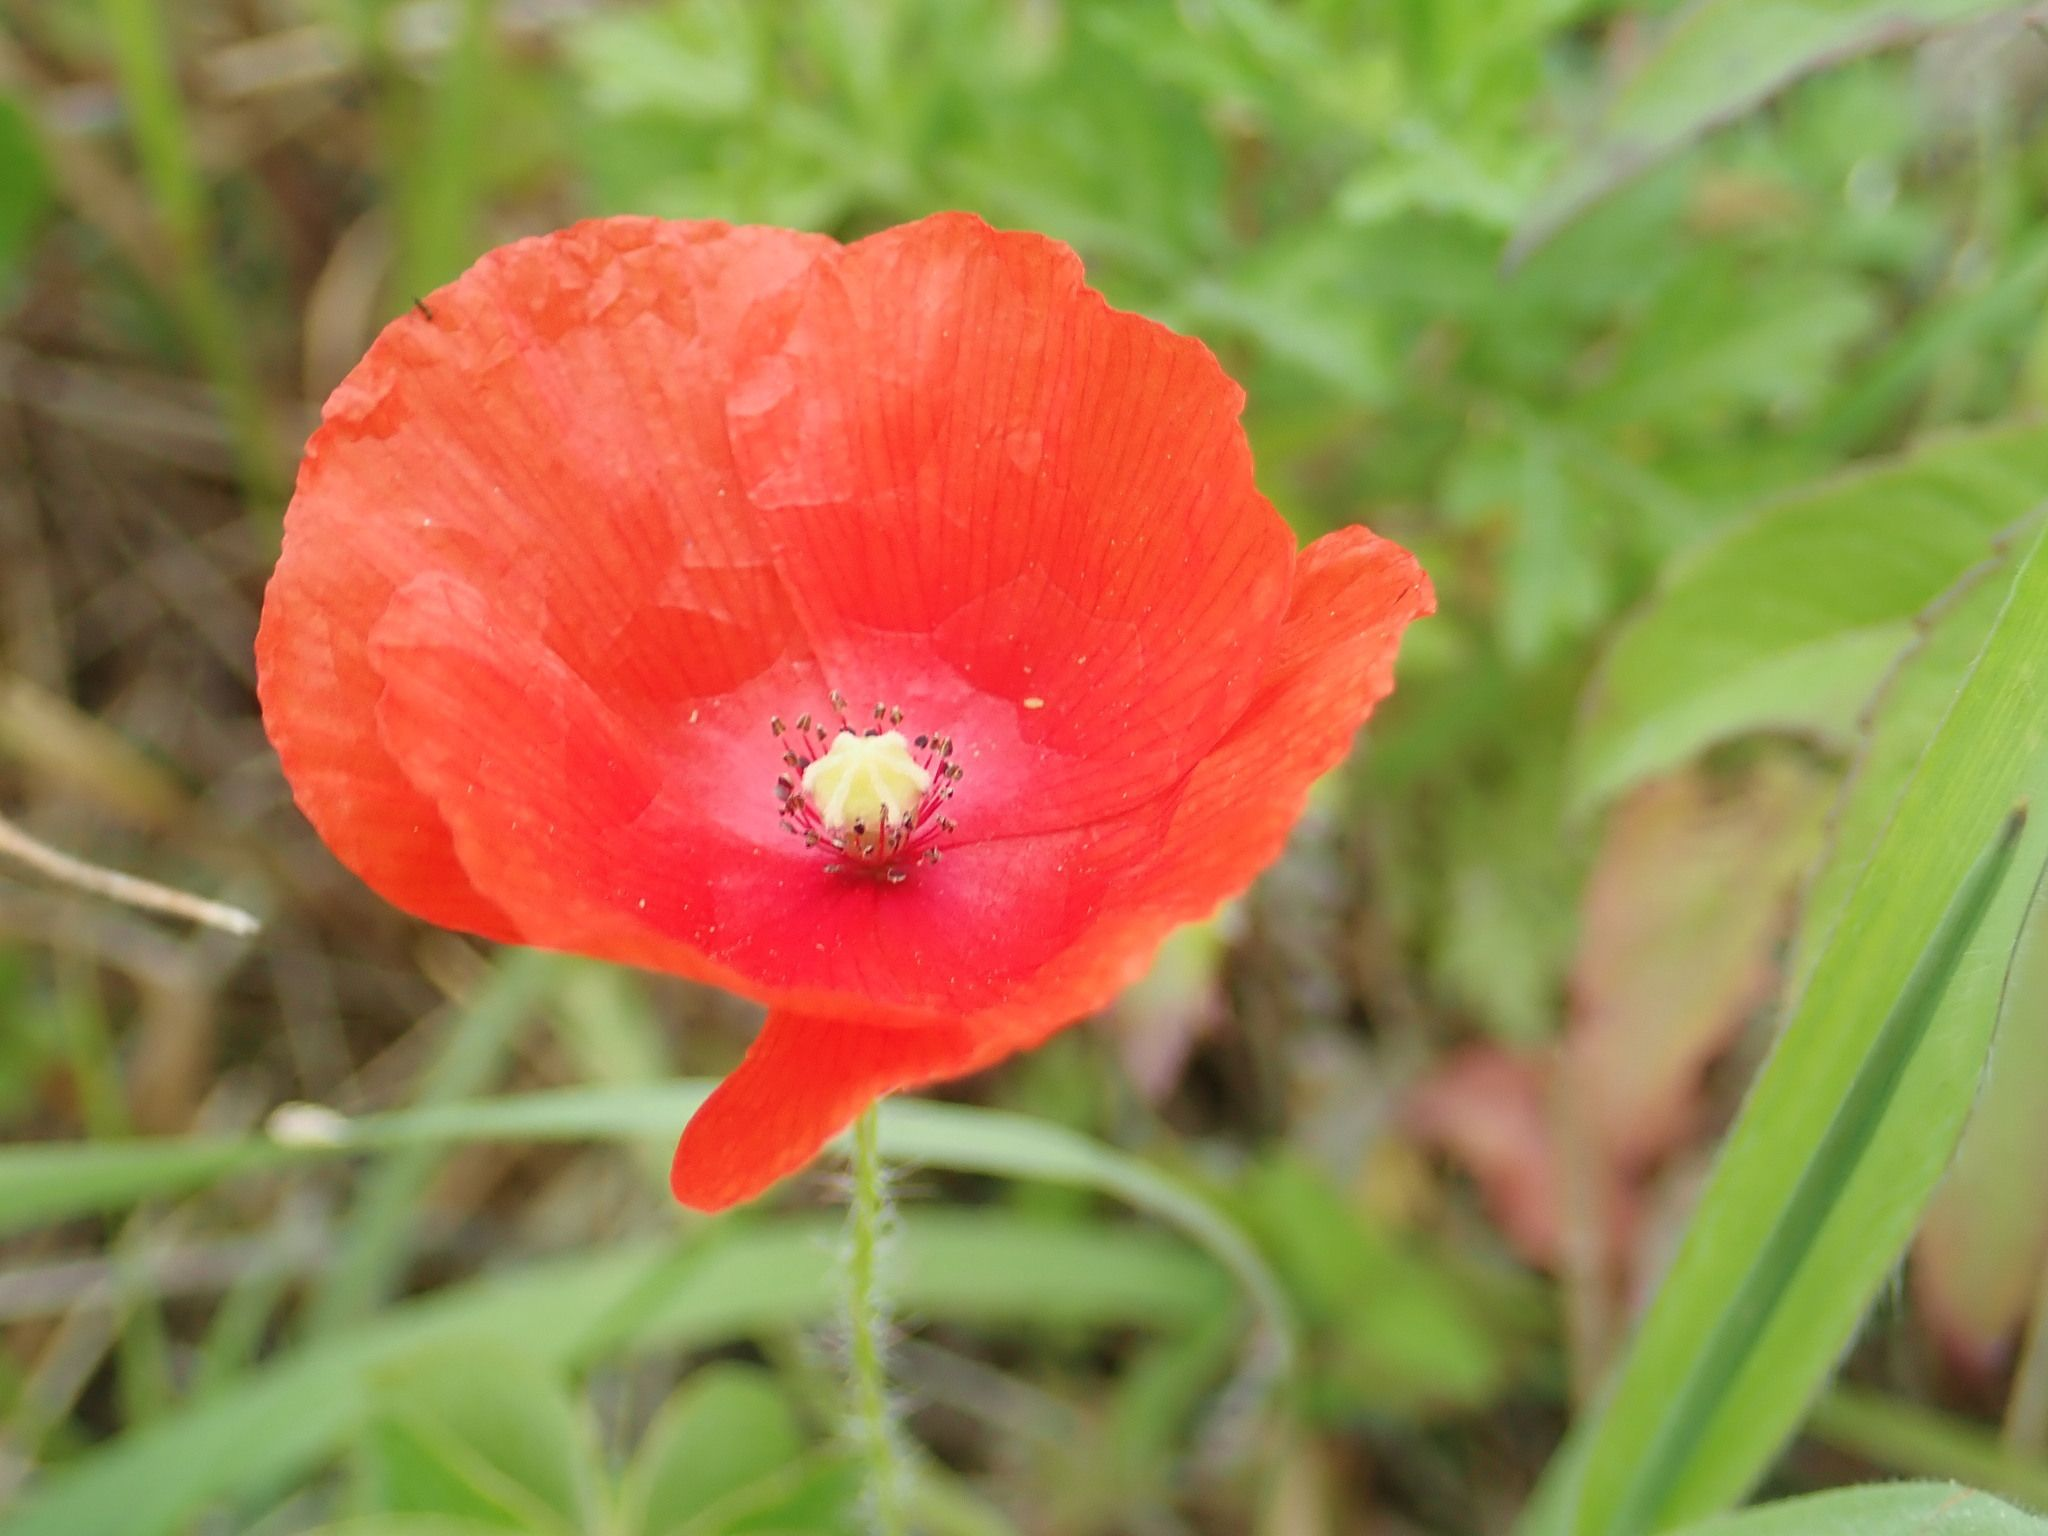 A single bright red-orange common poppy flower is surrounded by greenery.